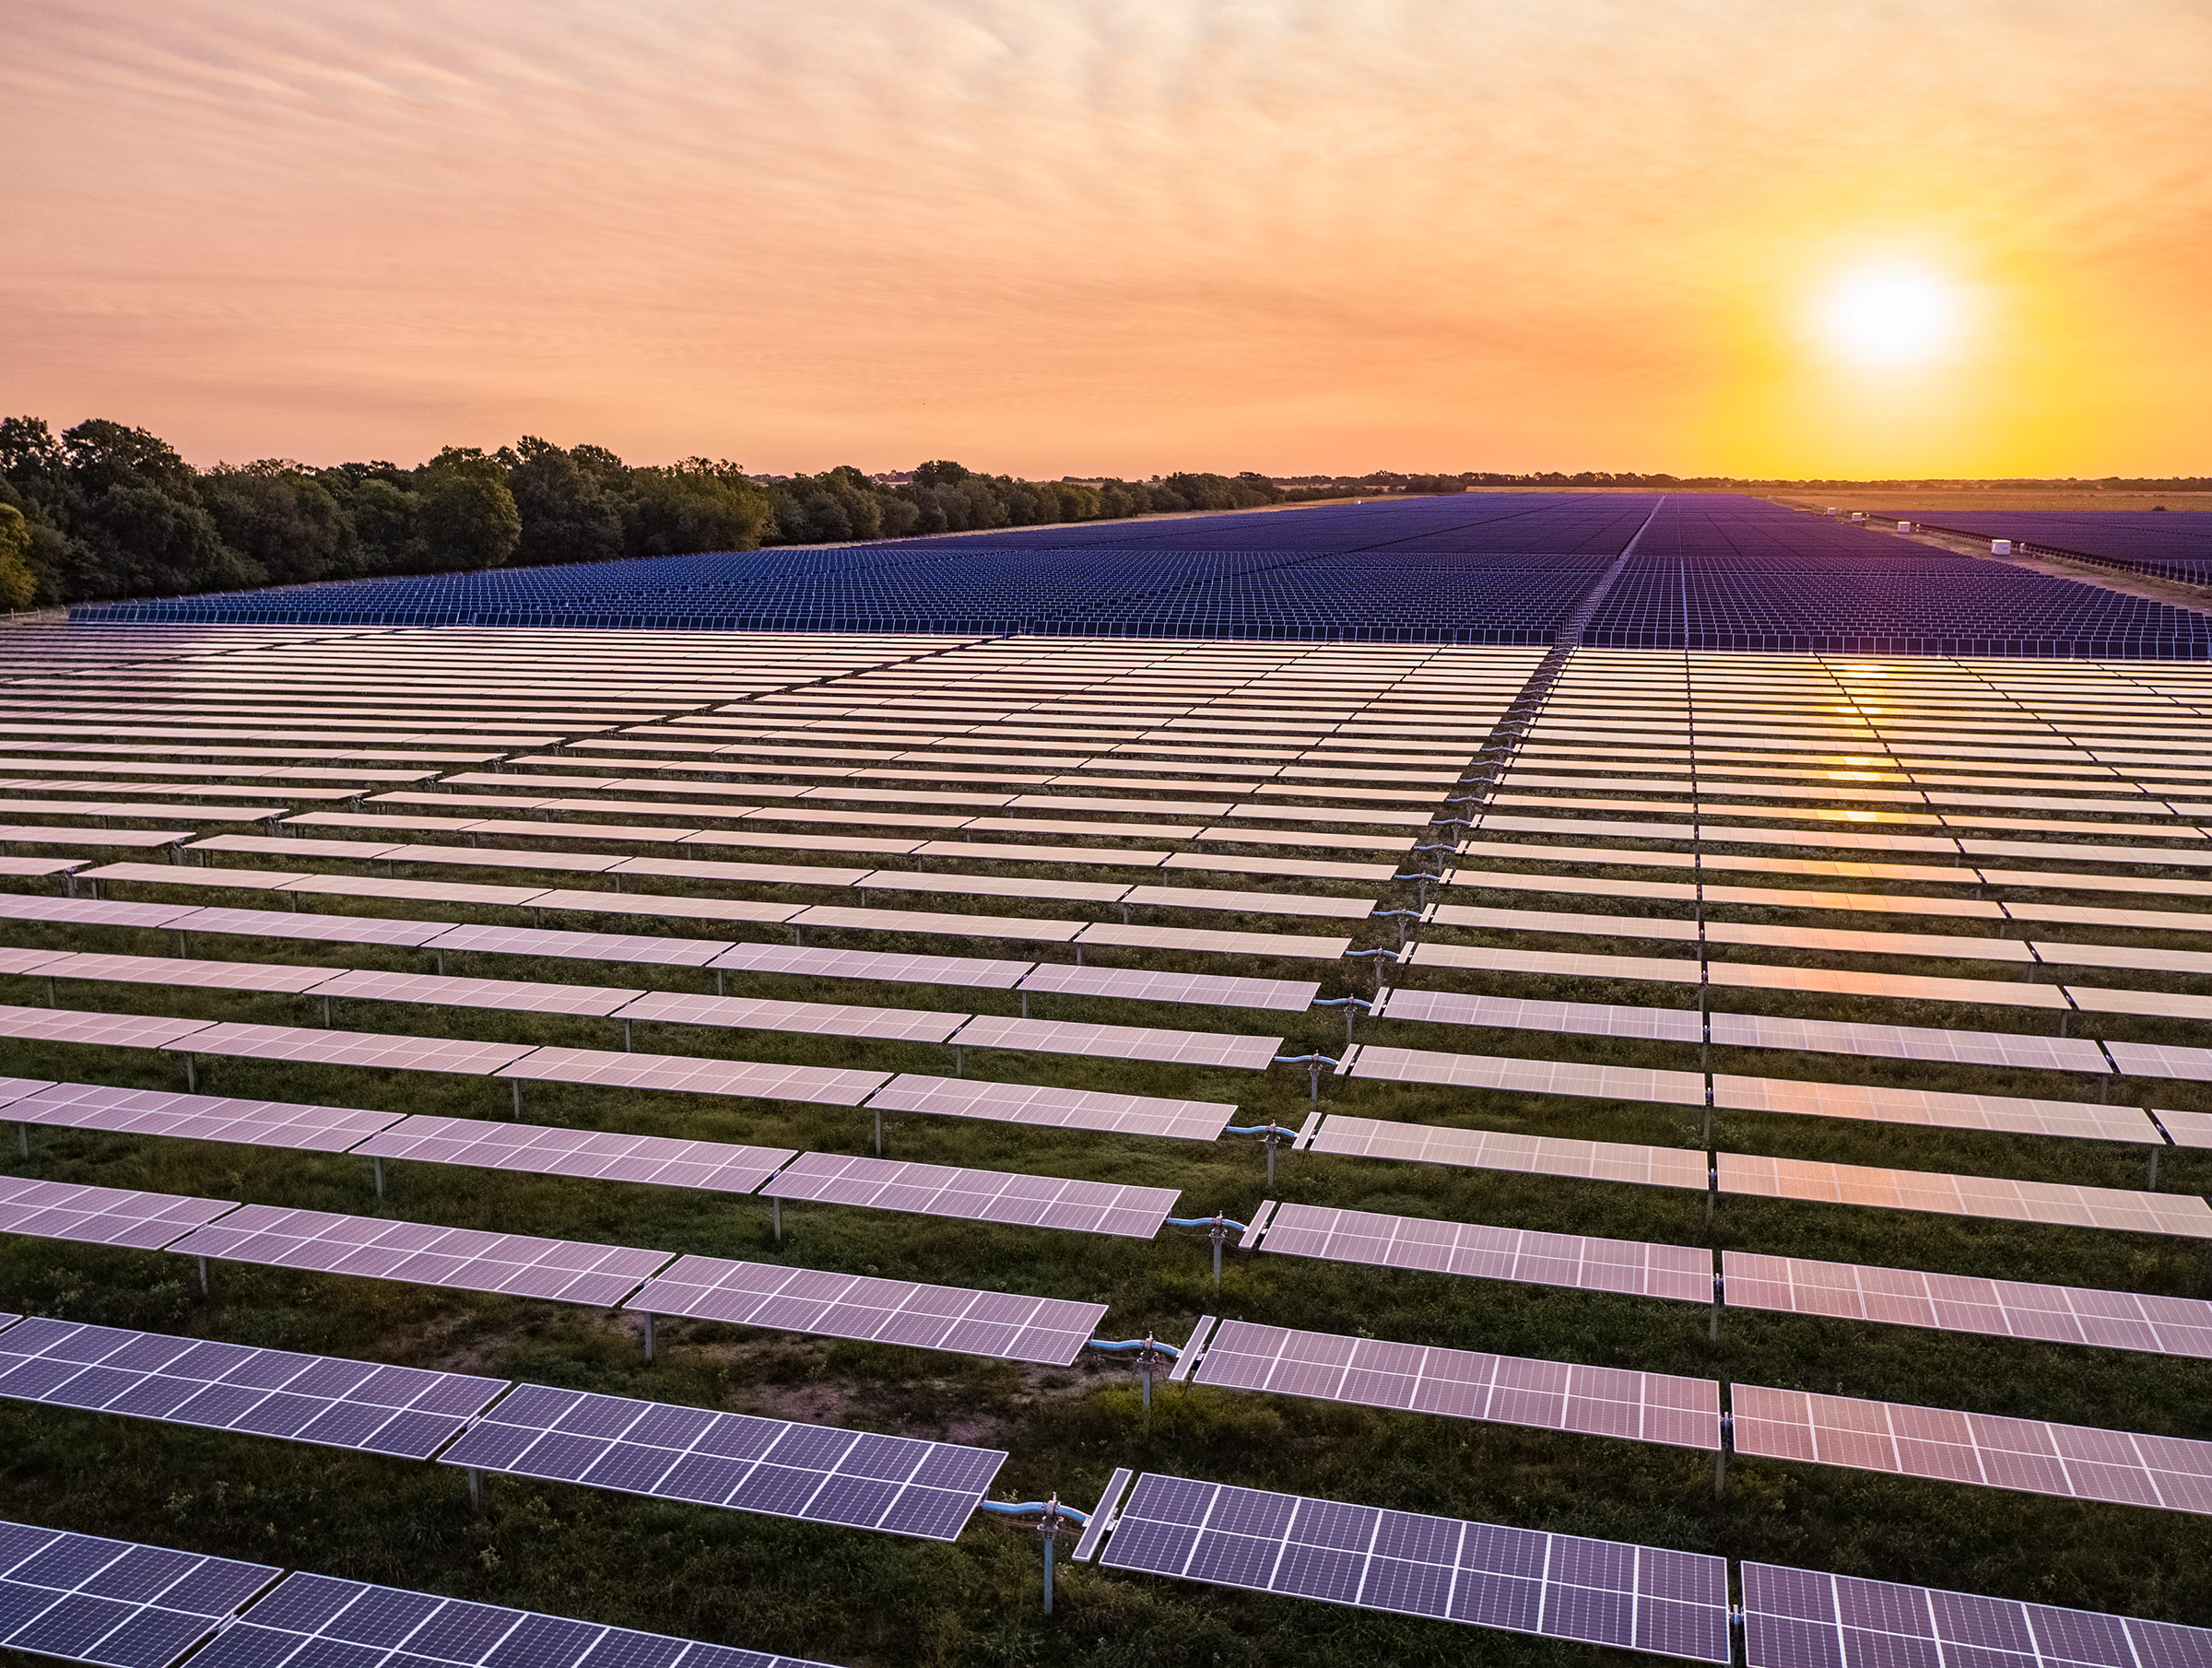 Construction of Lightsource bp's Impact Solar project in Lamar County, Texas, in 2020. When complete, the 260 megawatt solar farm is expected to generate approximately 450,000 megawatt hours of solar power annually.